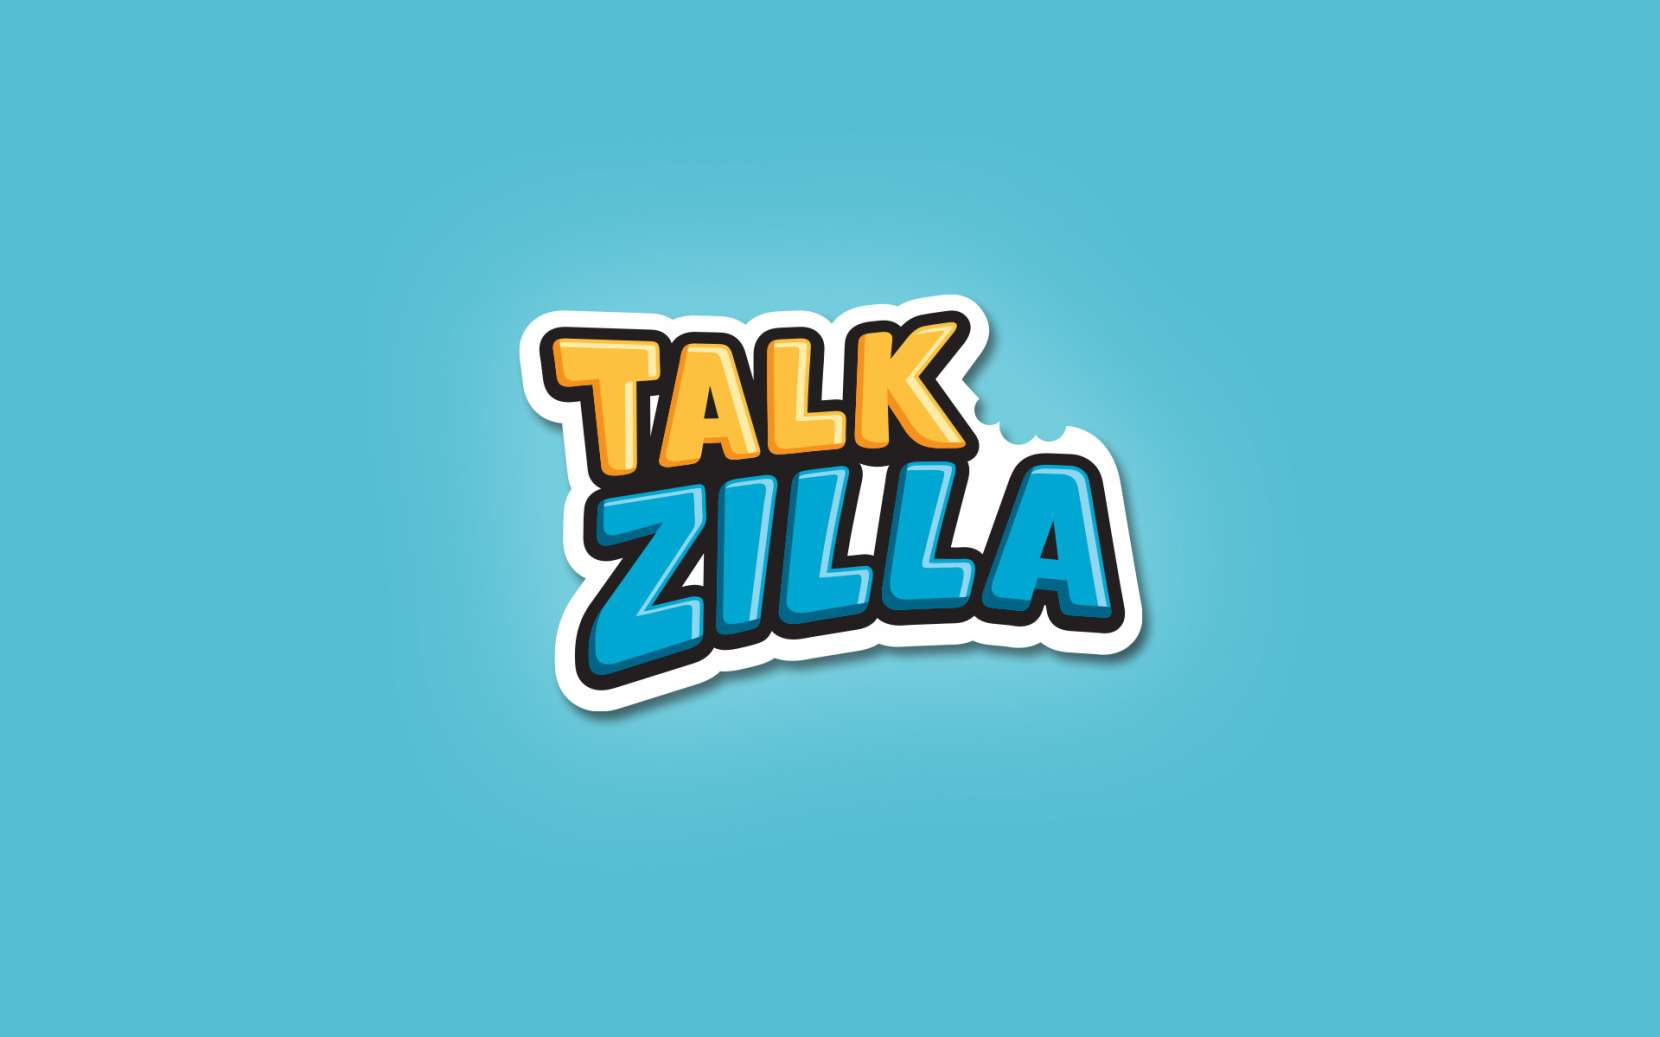 logo, cartoon, typography, talkzilla, design, branding, app, talk, illustrative, illustration, character, mascot, wizmaya, studio, animation